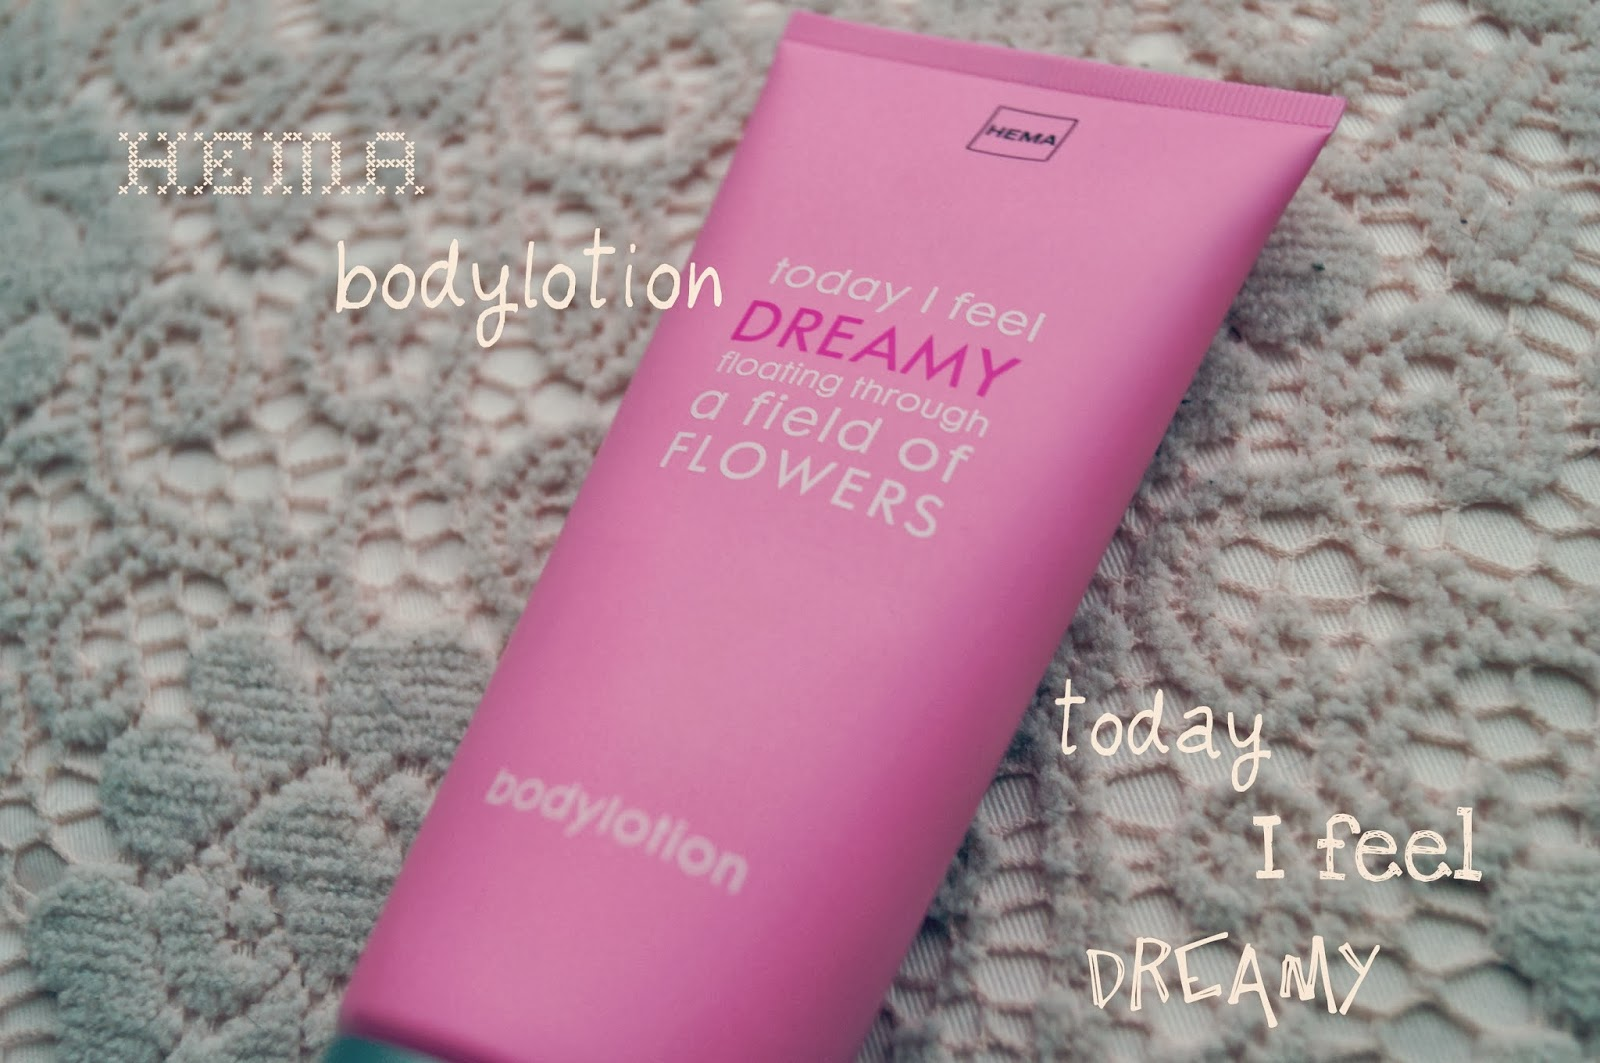 Review: Today I feel dreamy.